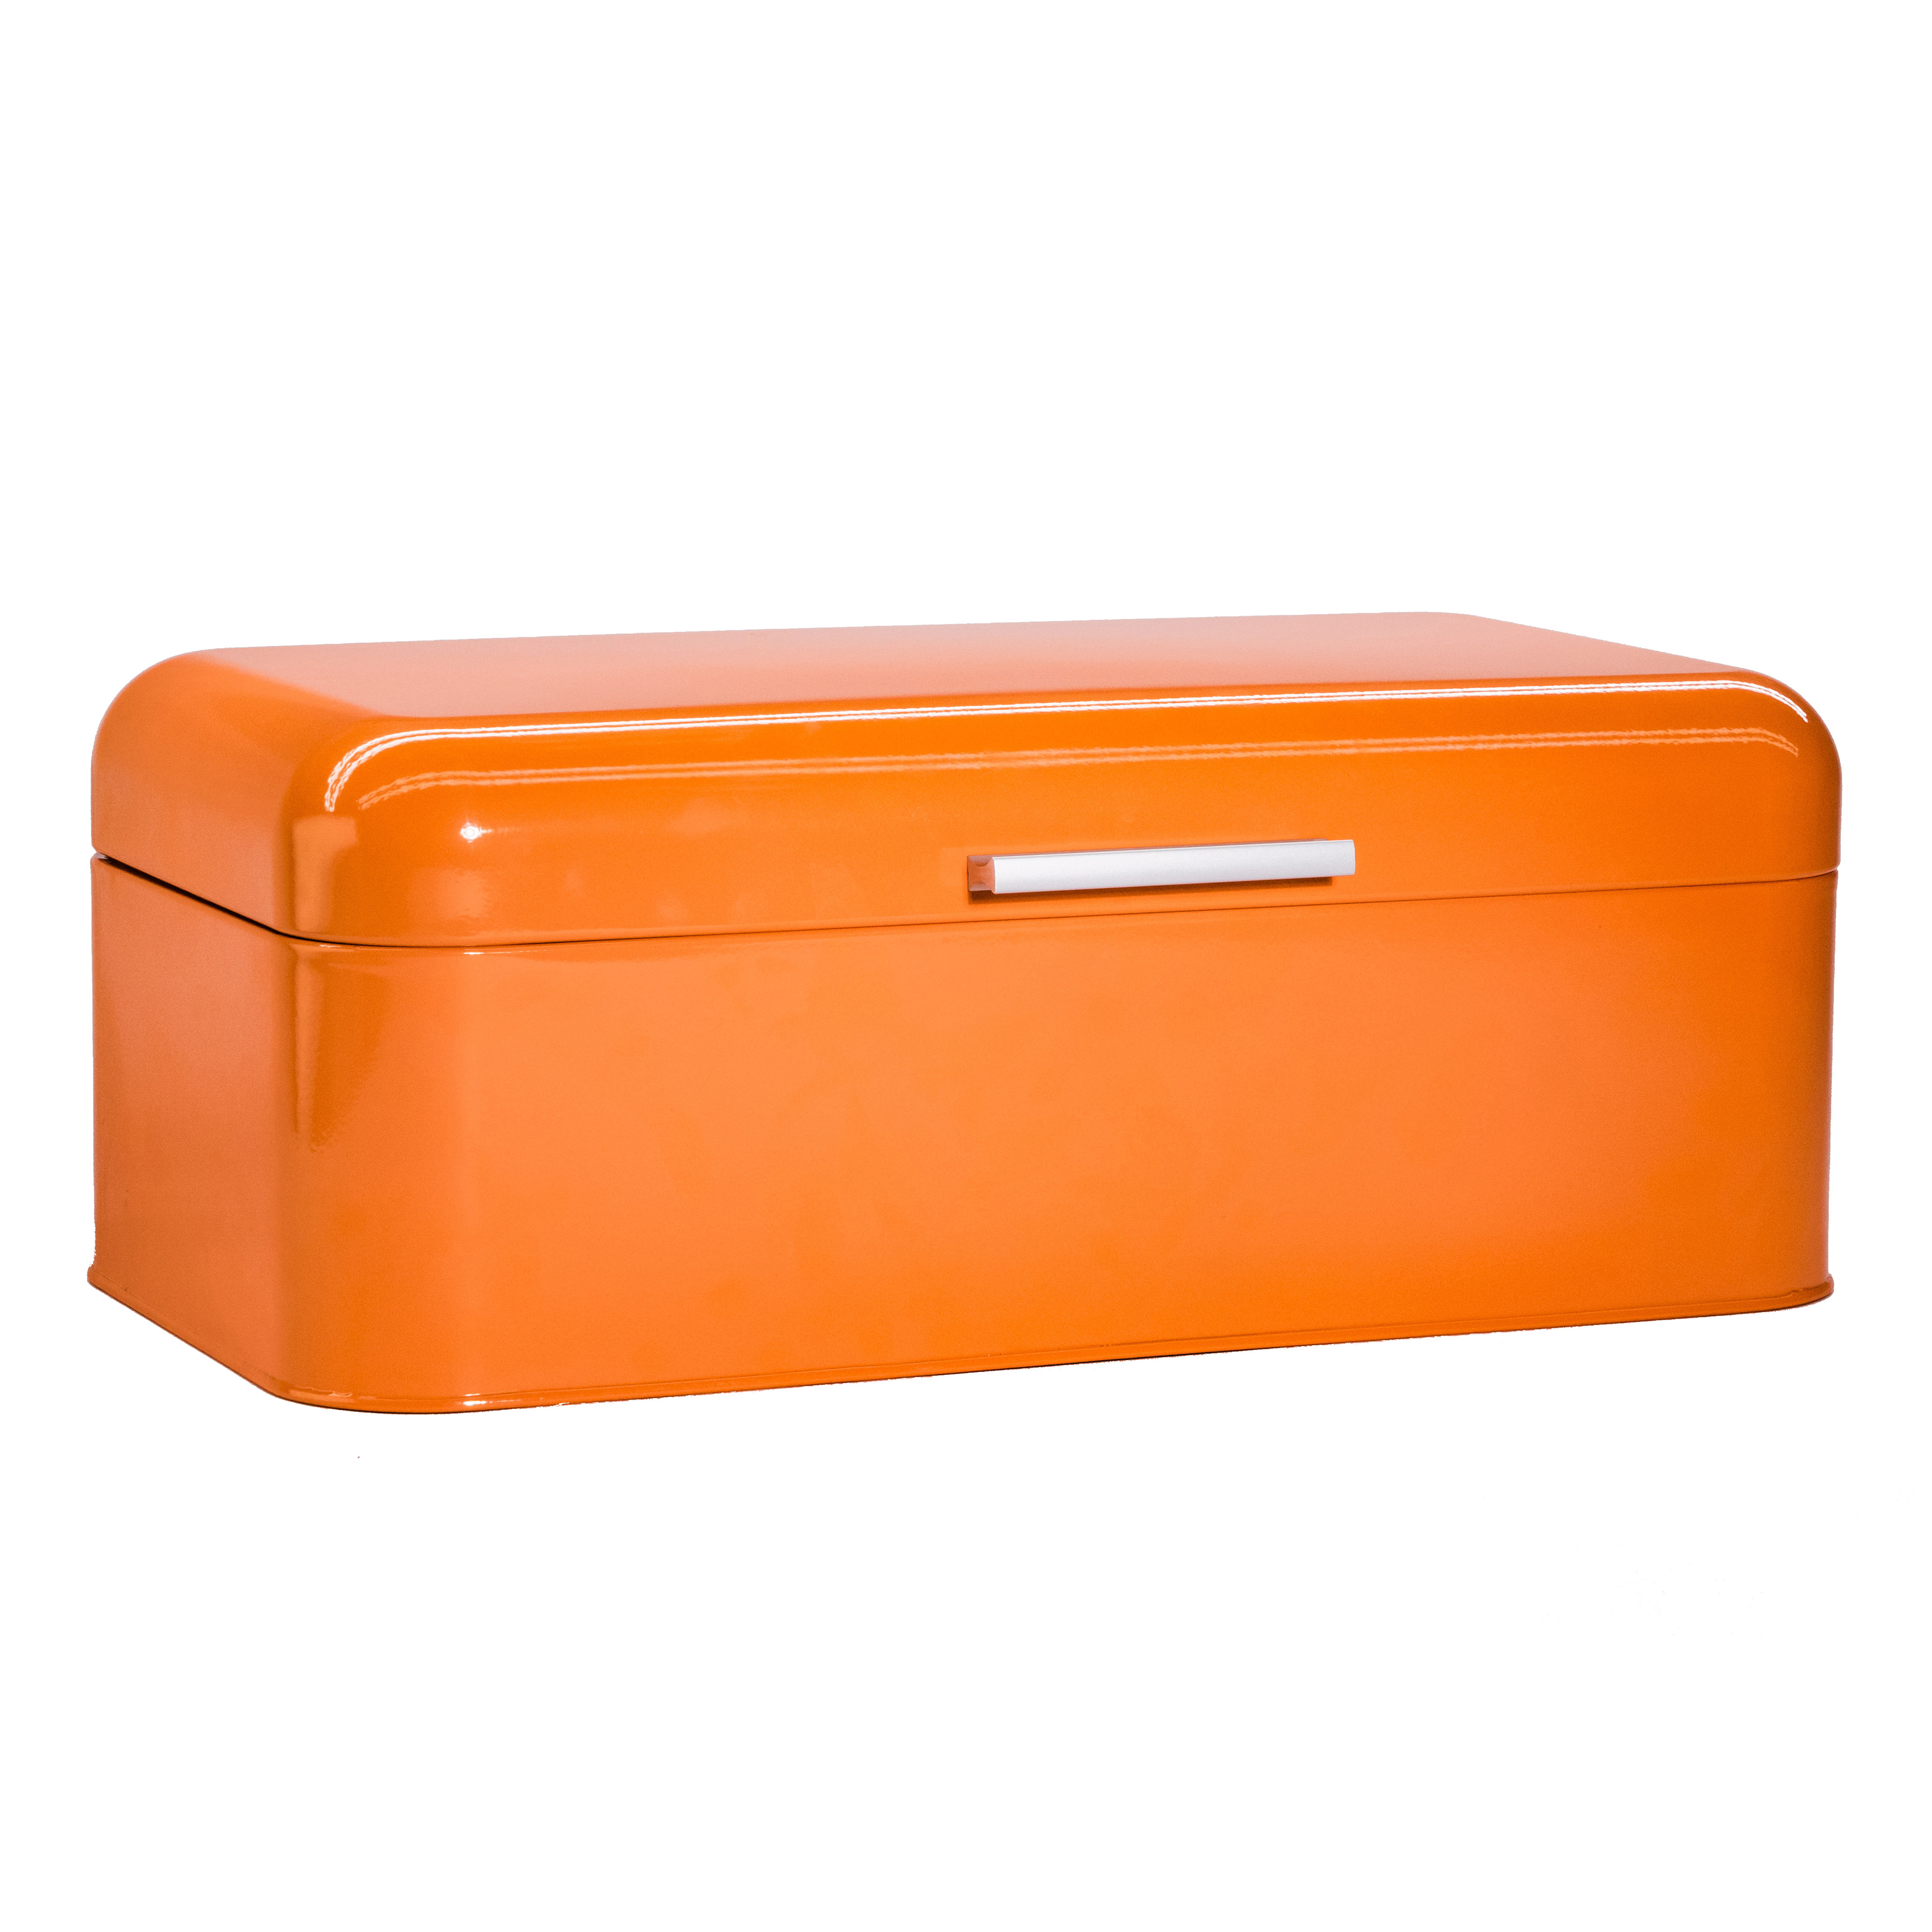 Orange Bread Box